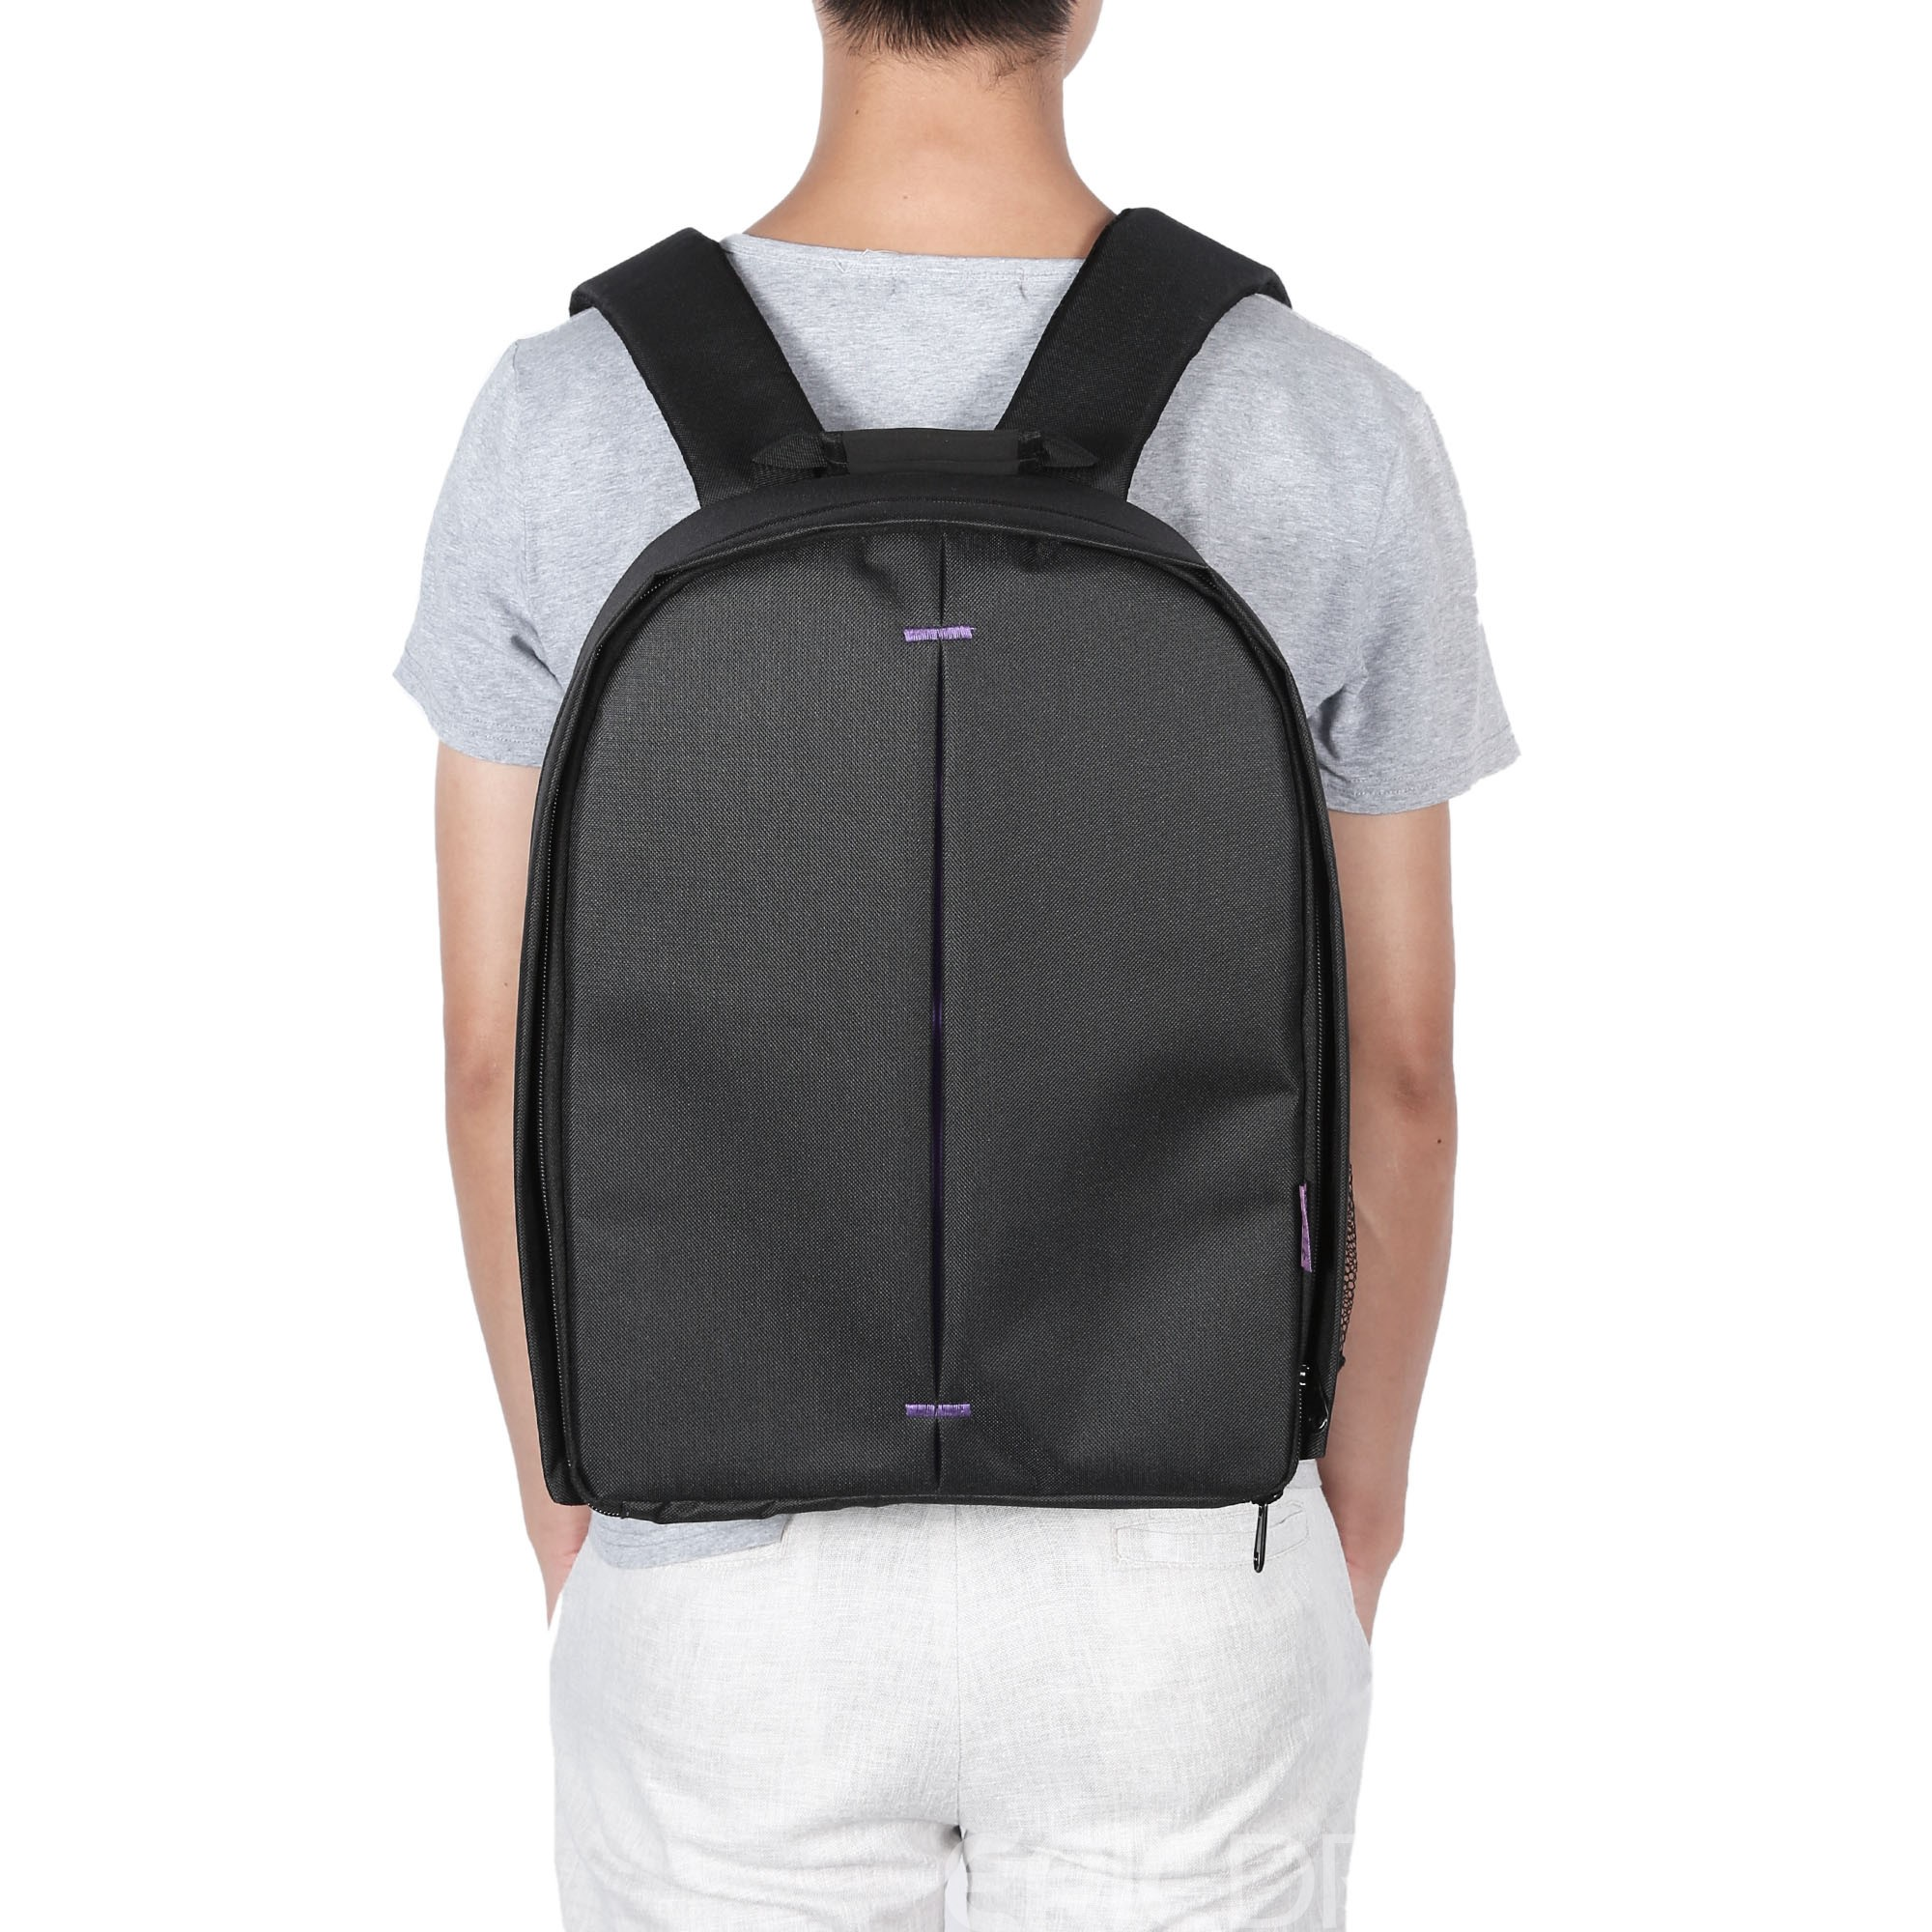 Ericdress Nylon Plain European Backpacks